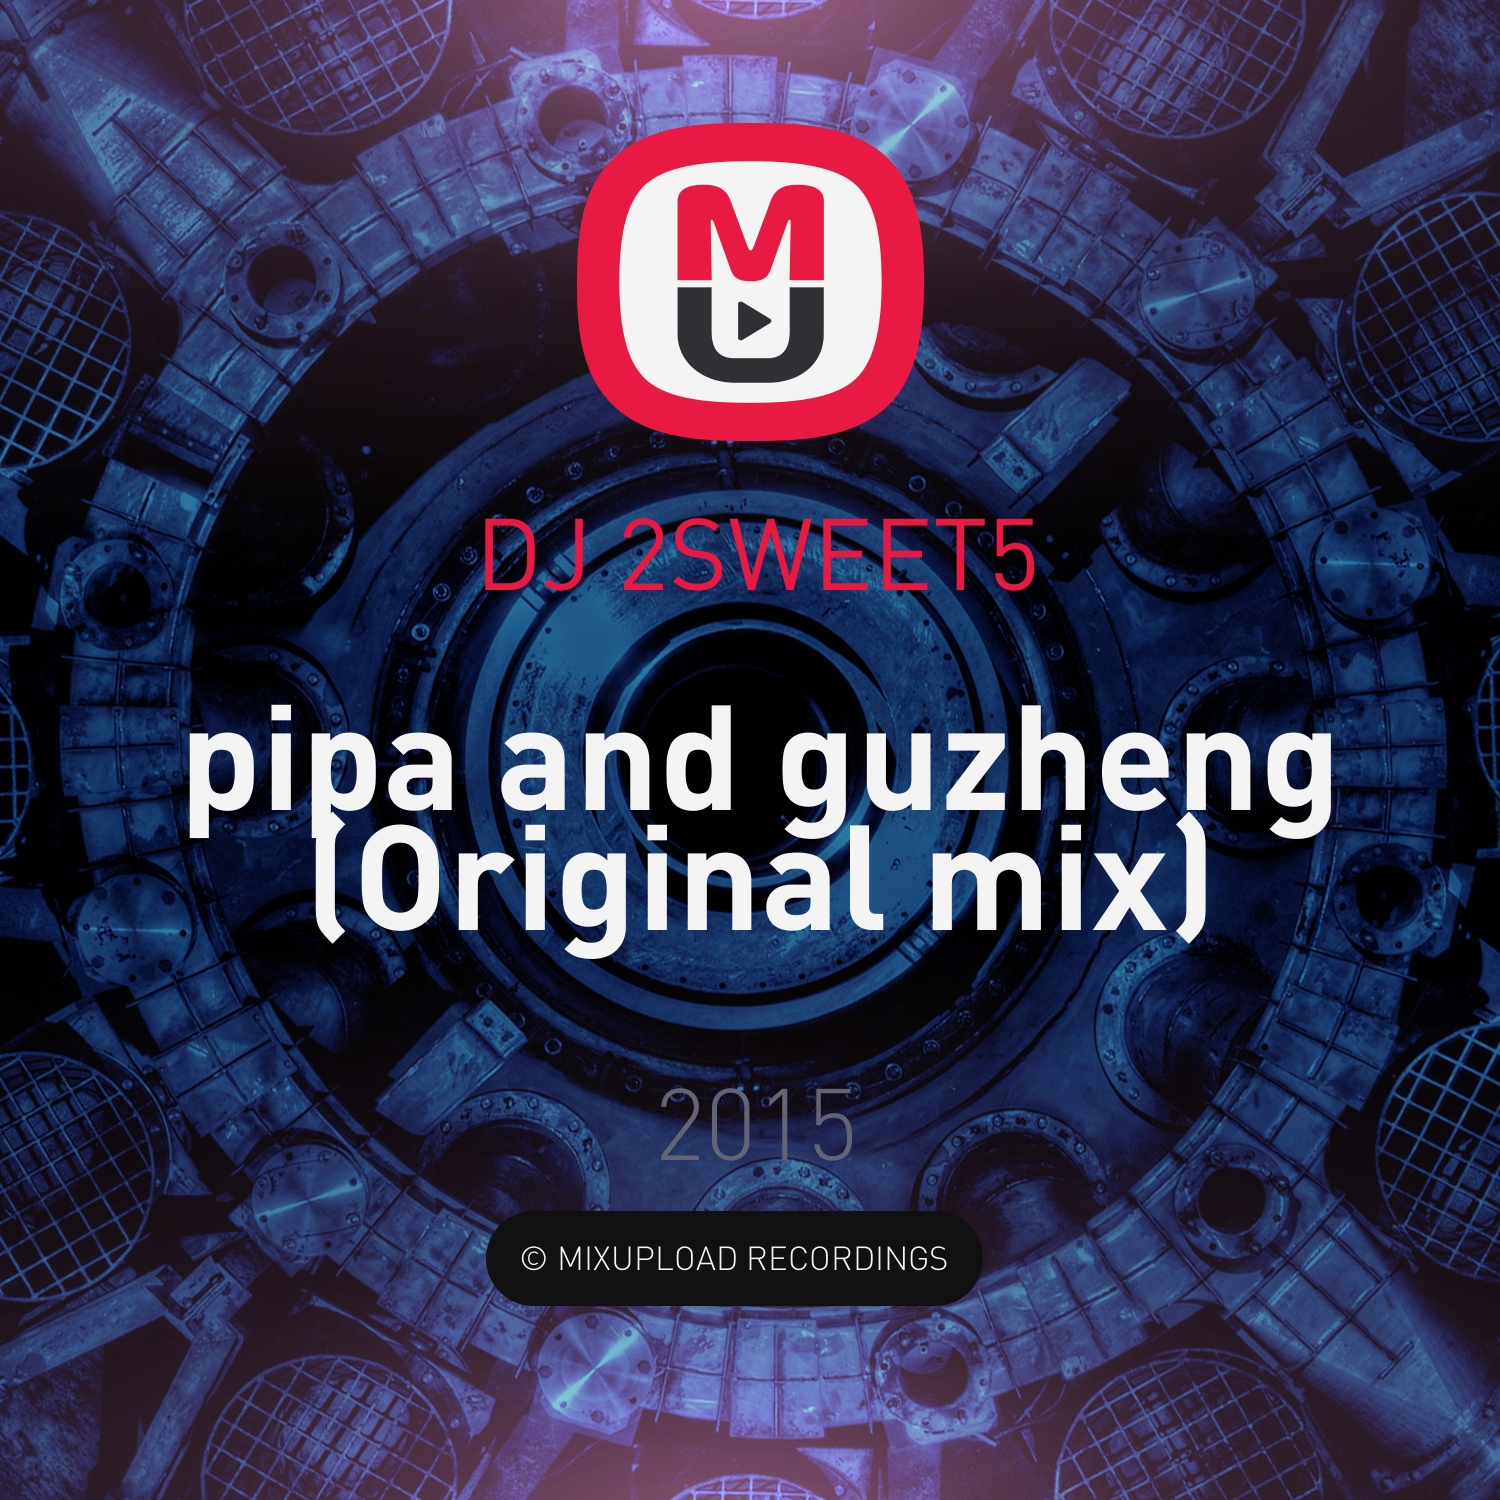 DJ 2SWEET5 - pipa and guzheng (Original mix)